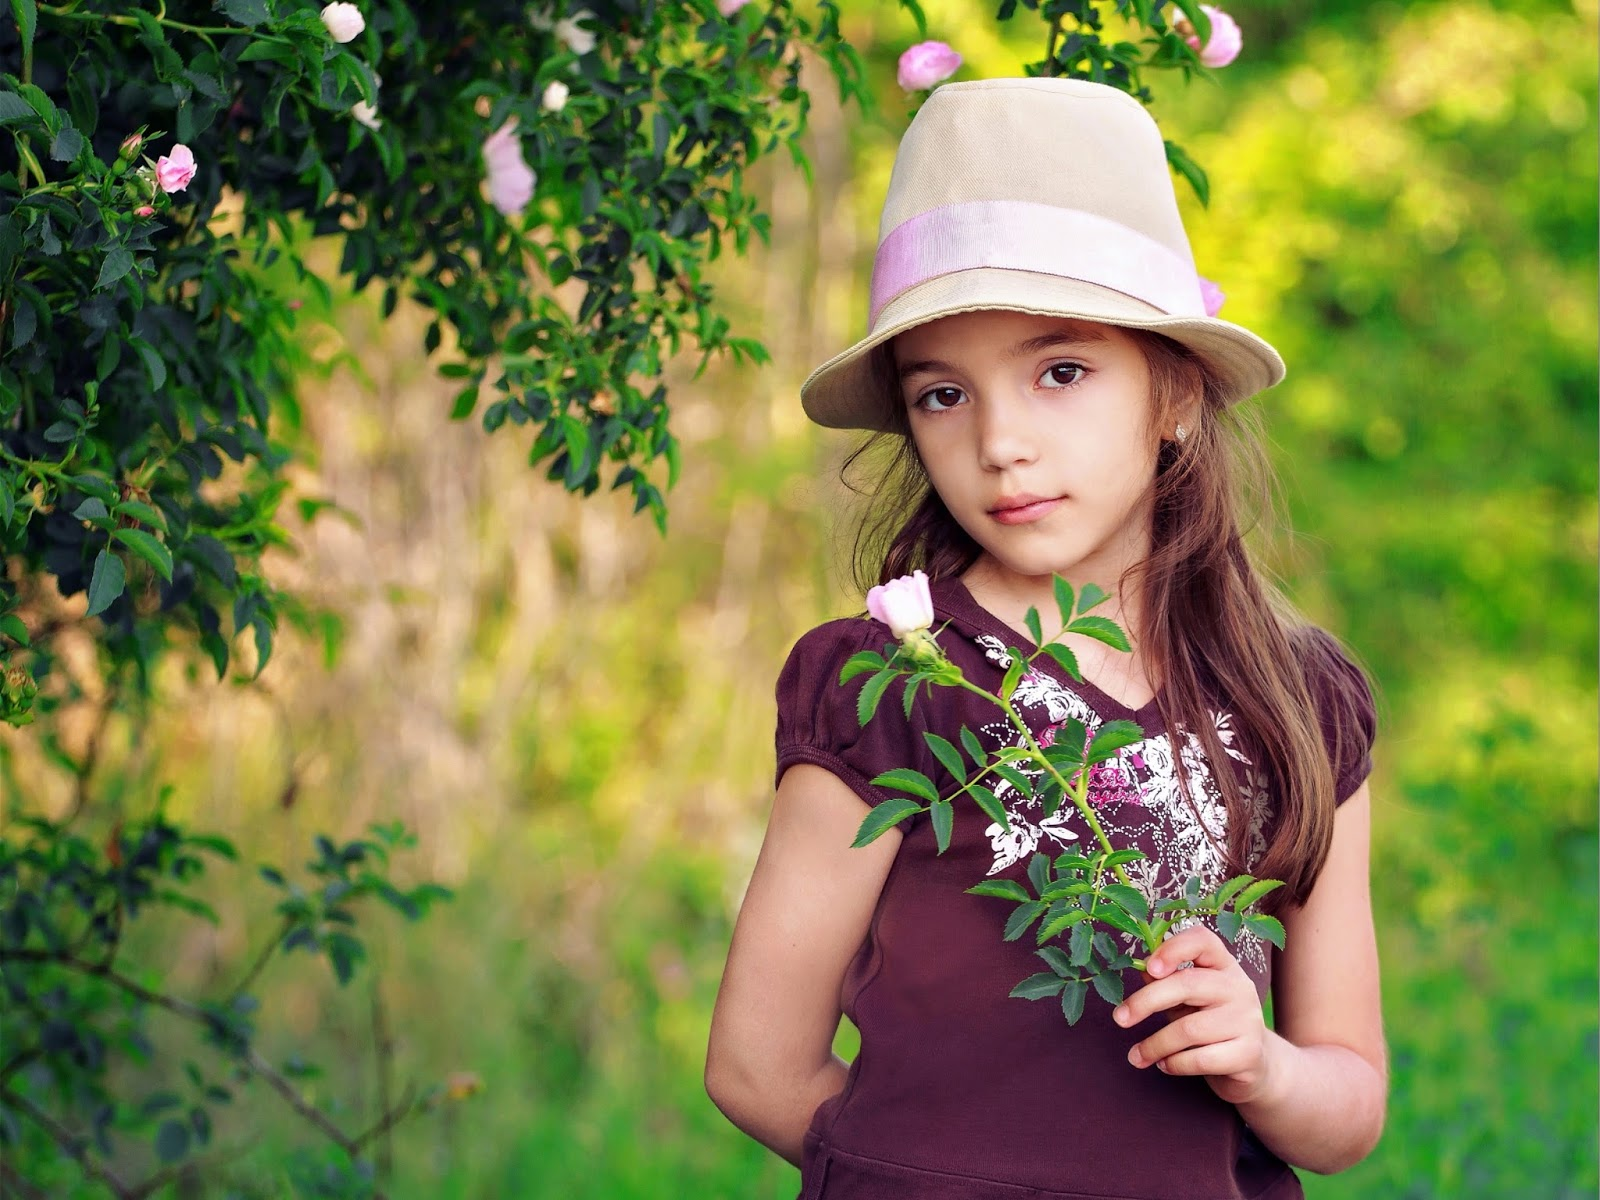 Latest Cute Wallpapers For Mobile Mphoto Cover Cute Girl Babies Wallpapers Very Cute With